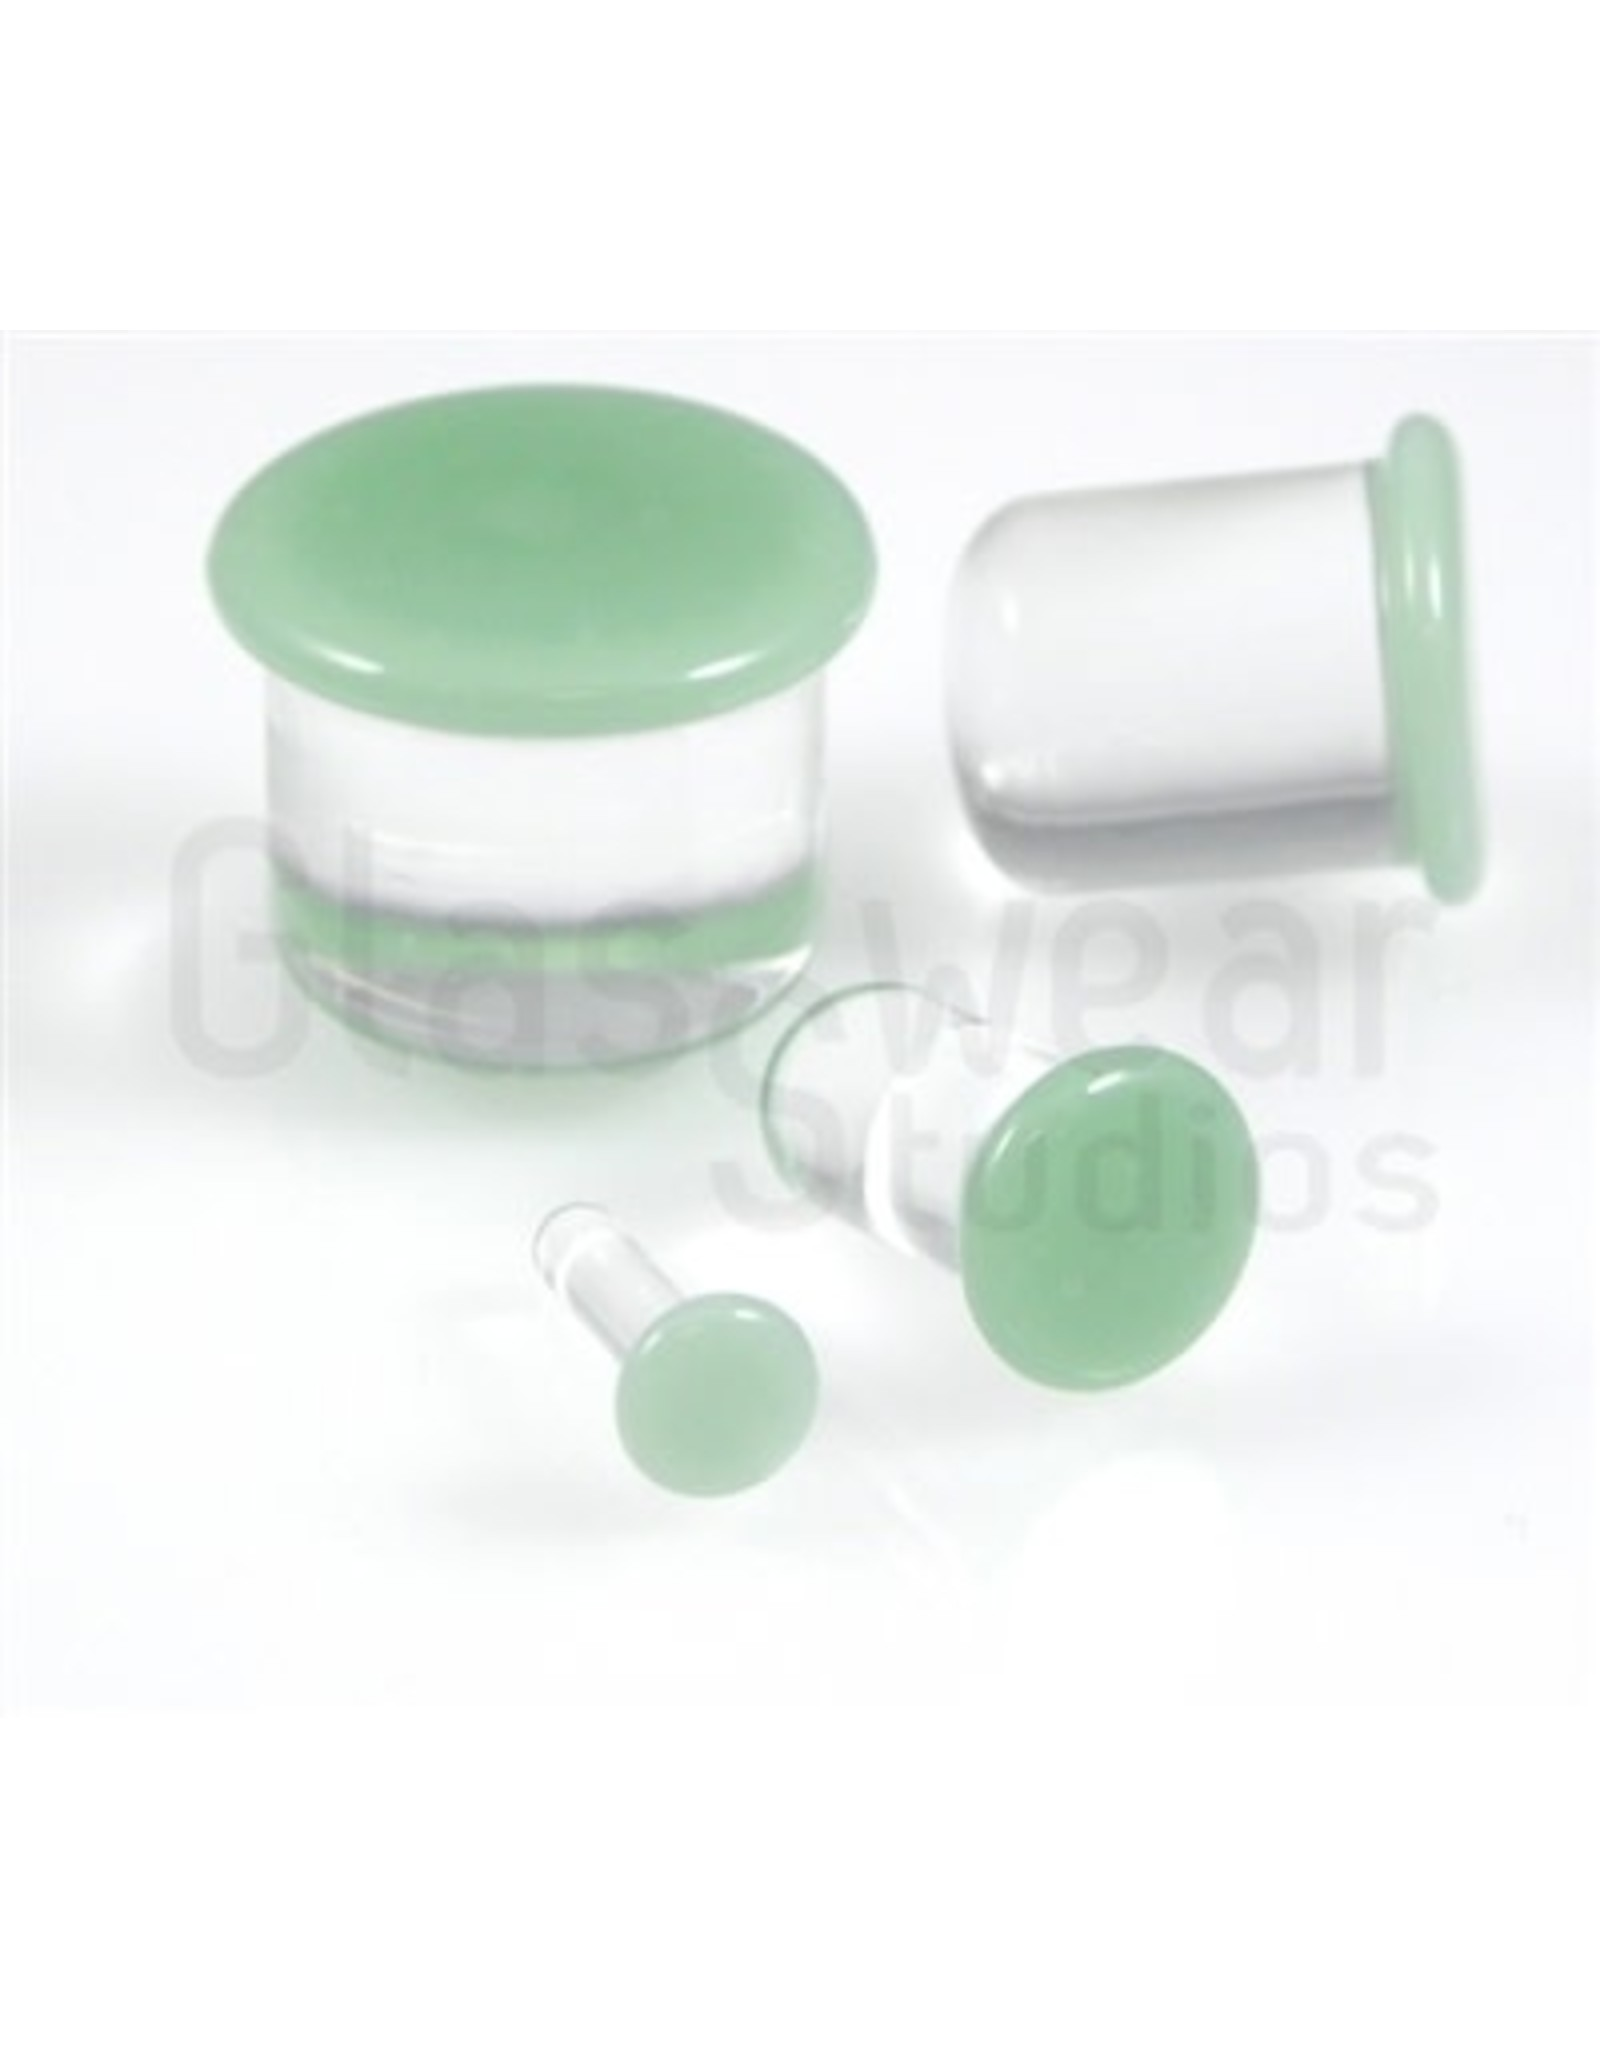 00g-9mm SF Glass Plugs